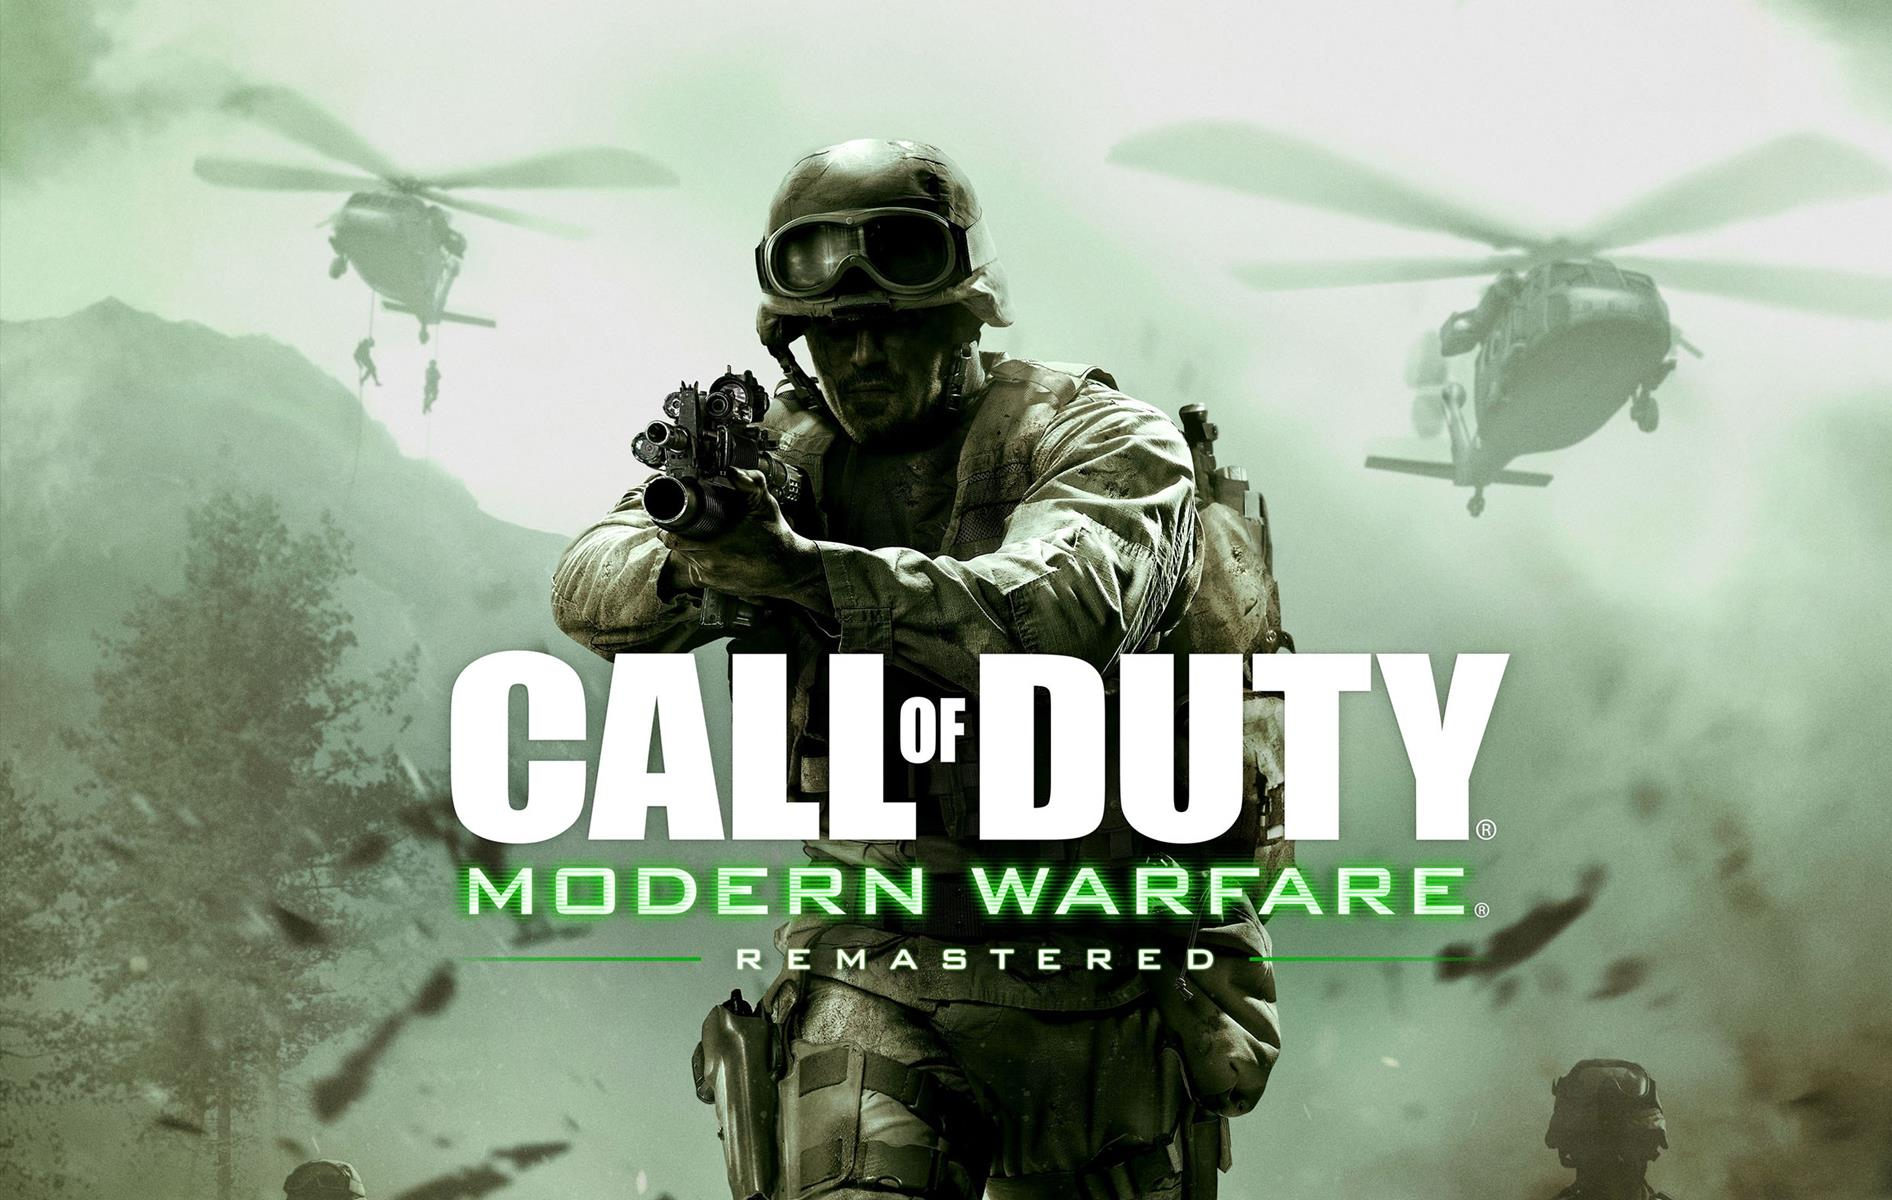 Call of Duty: Modern Warfare Remastered PS4 Standalone Version Coming June 27